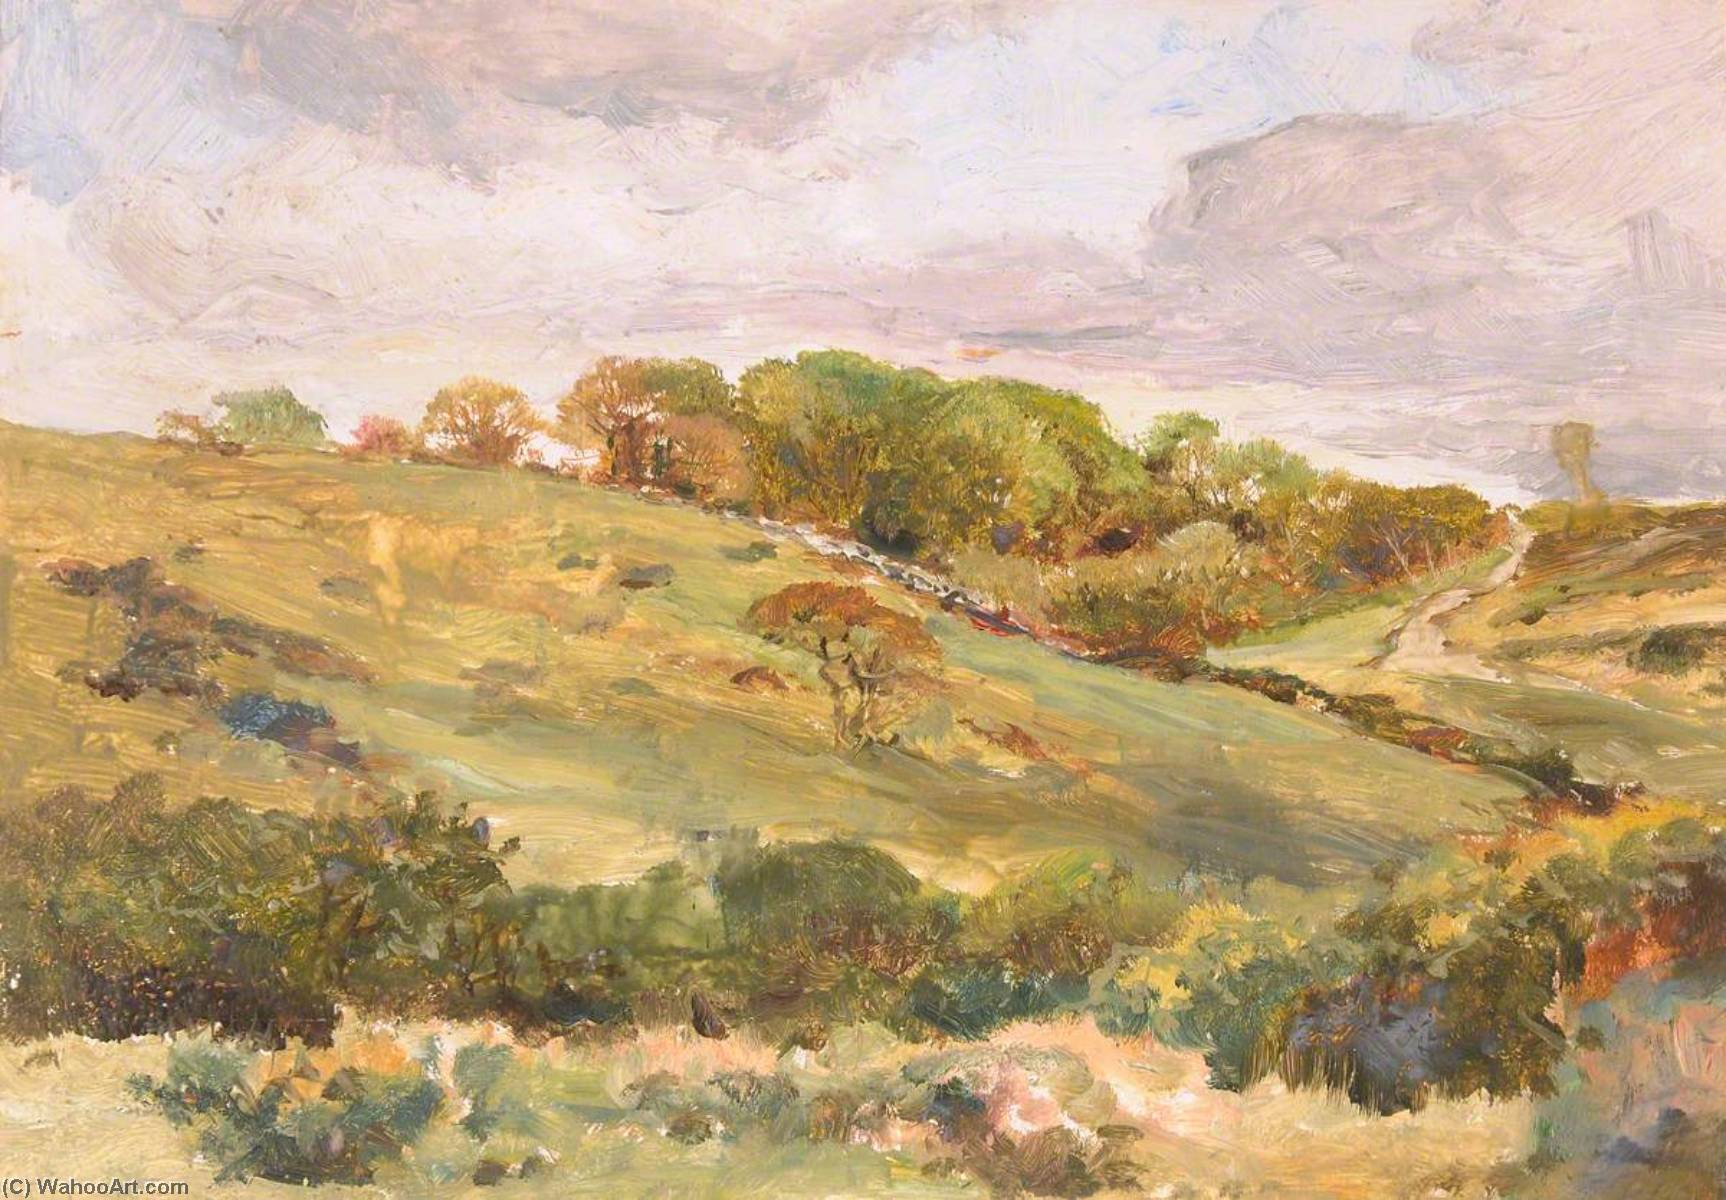 Achat Reproductions D'art | Llandwrog, 1880 de Frederick William Hayes | WahooArt.com